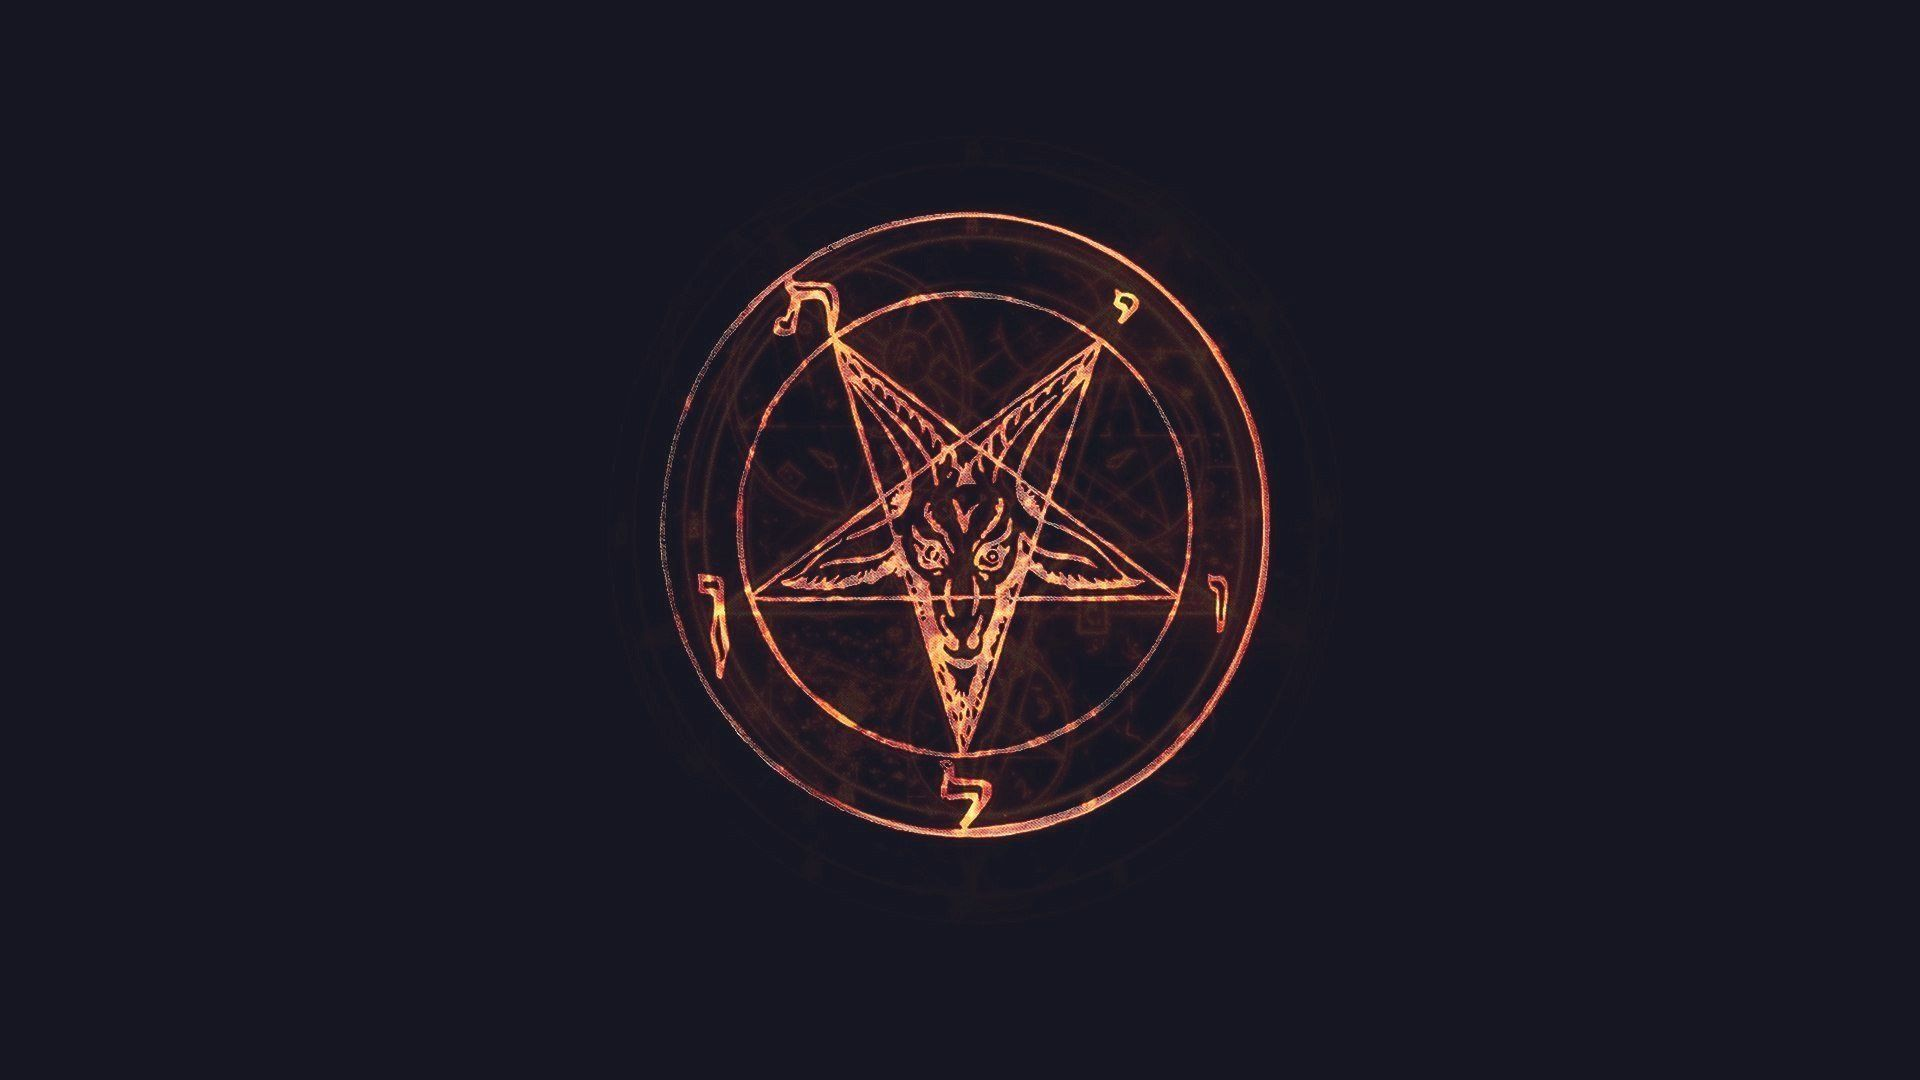 Sigil of Lucifer Wallpaper 1920×1080 Lucifer Wallpapers